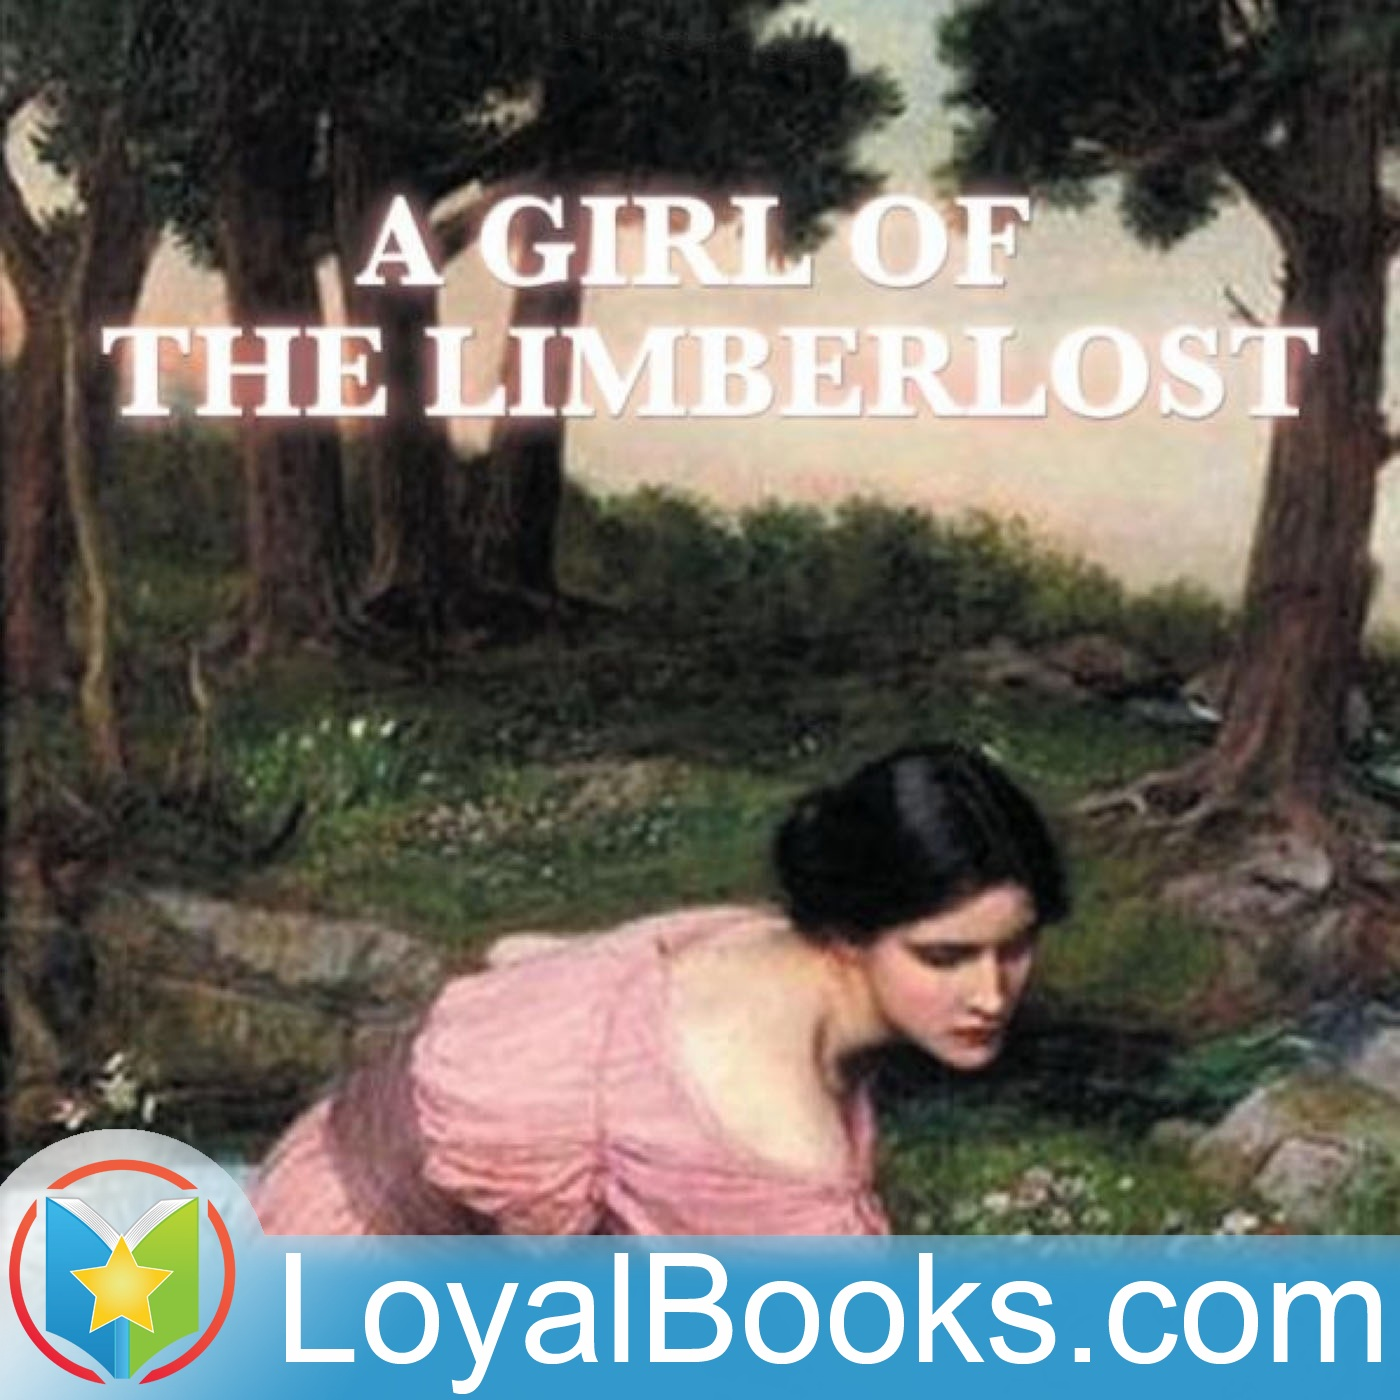 <![CDATA[A Girl of the Limberlost by Gene Stratton-Porter]]>